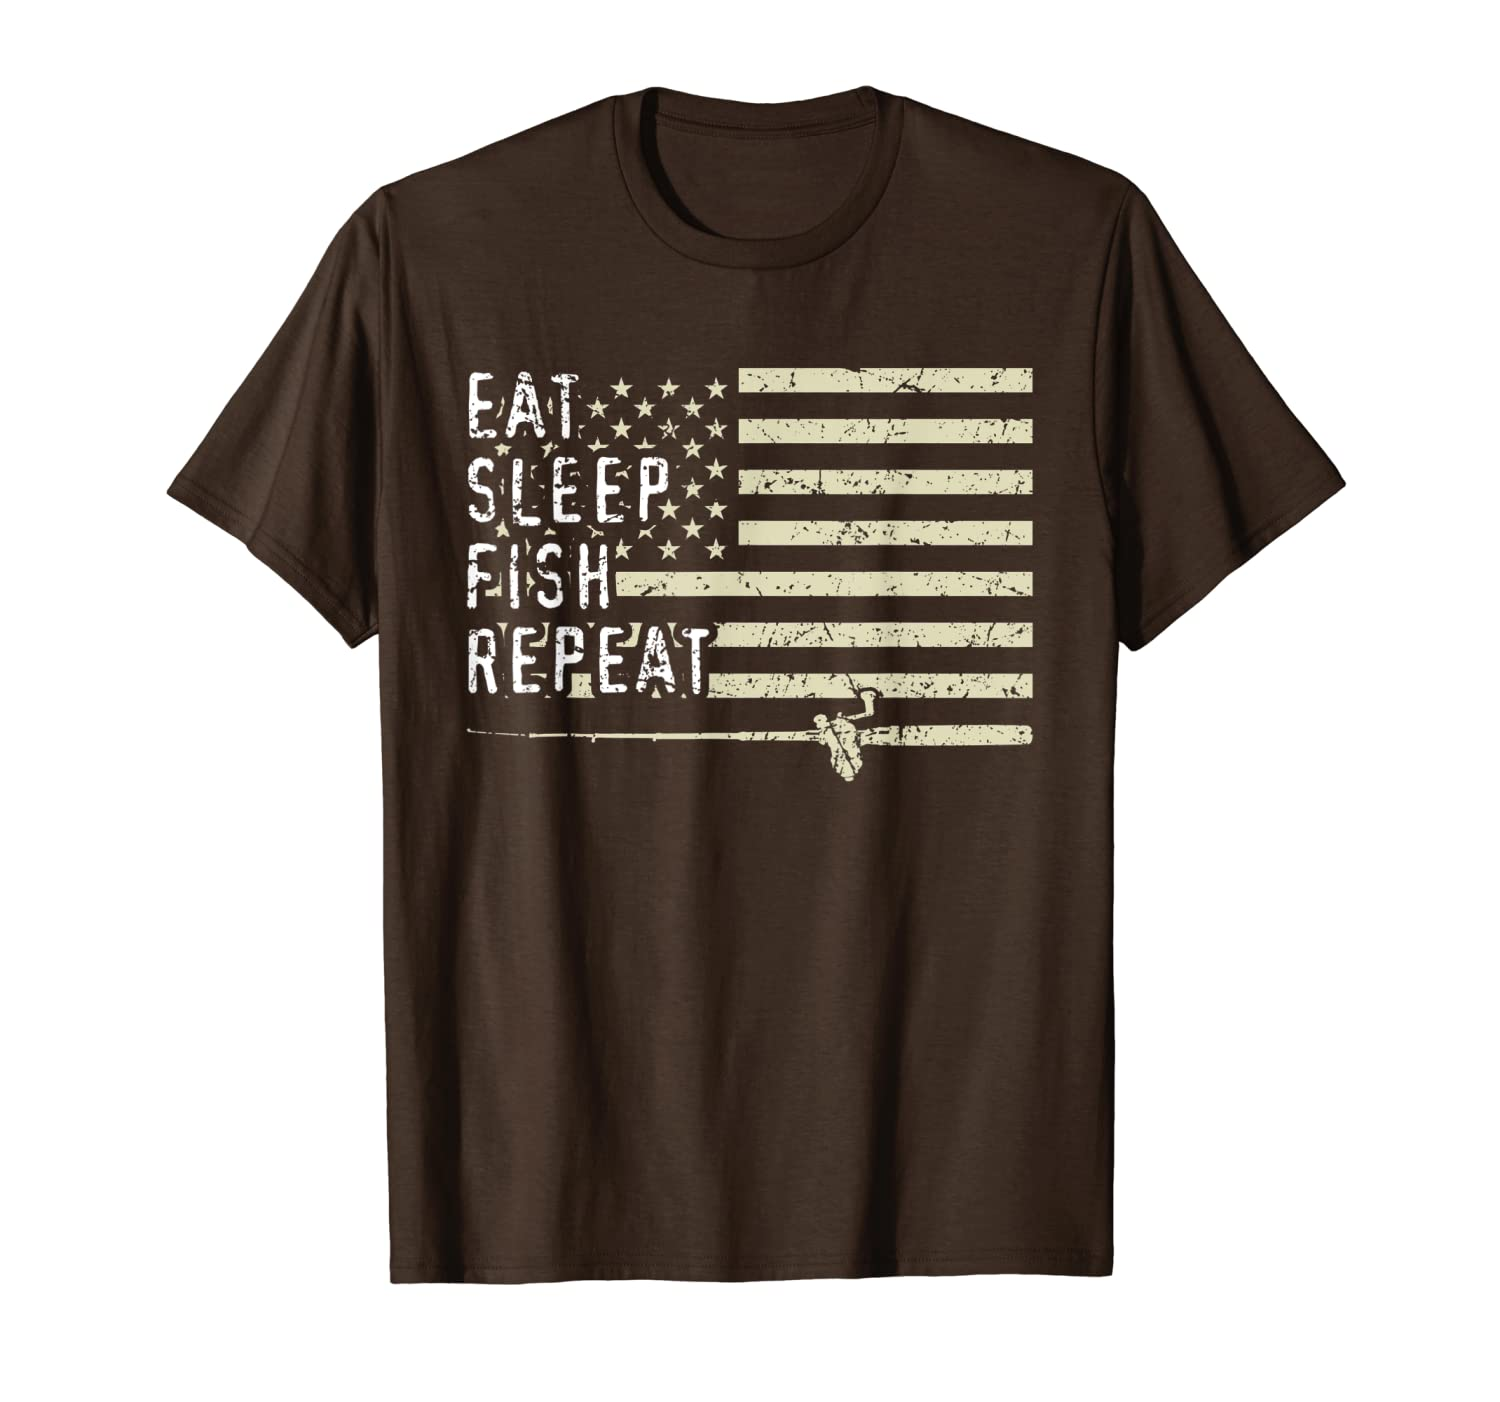 Eat Sleep Fish Repeat Funny Bass Fishing Fathers Day Gifts T-Shirt LongSleeve Tee